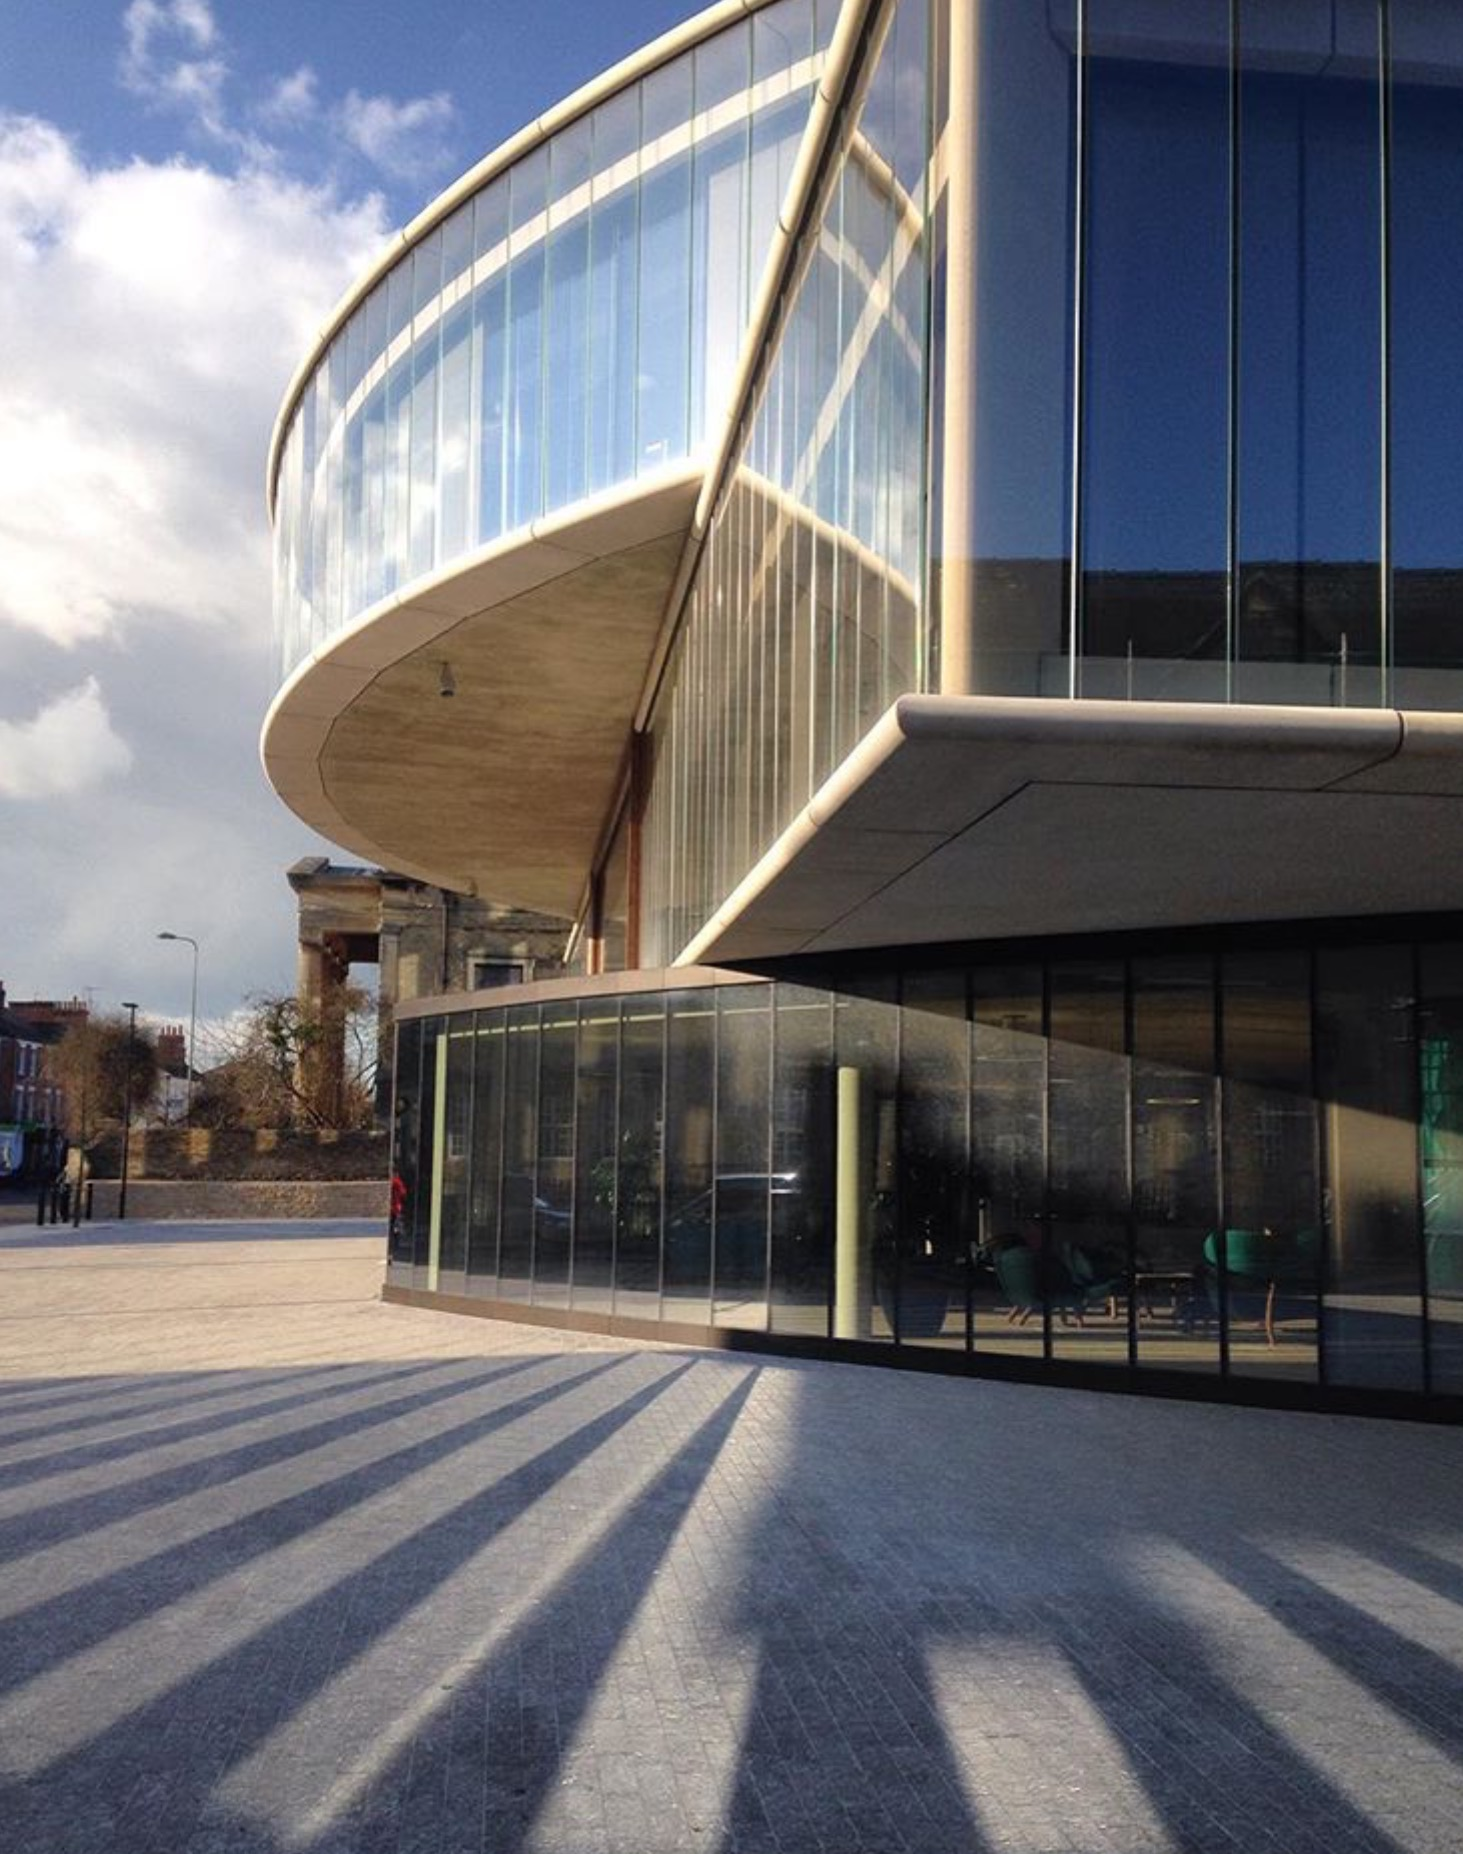 oxford-building-design-oxford-universitys-blavatnik-school-of-government-shadpw-glass